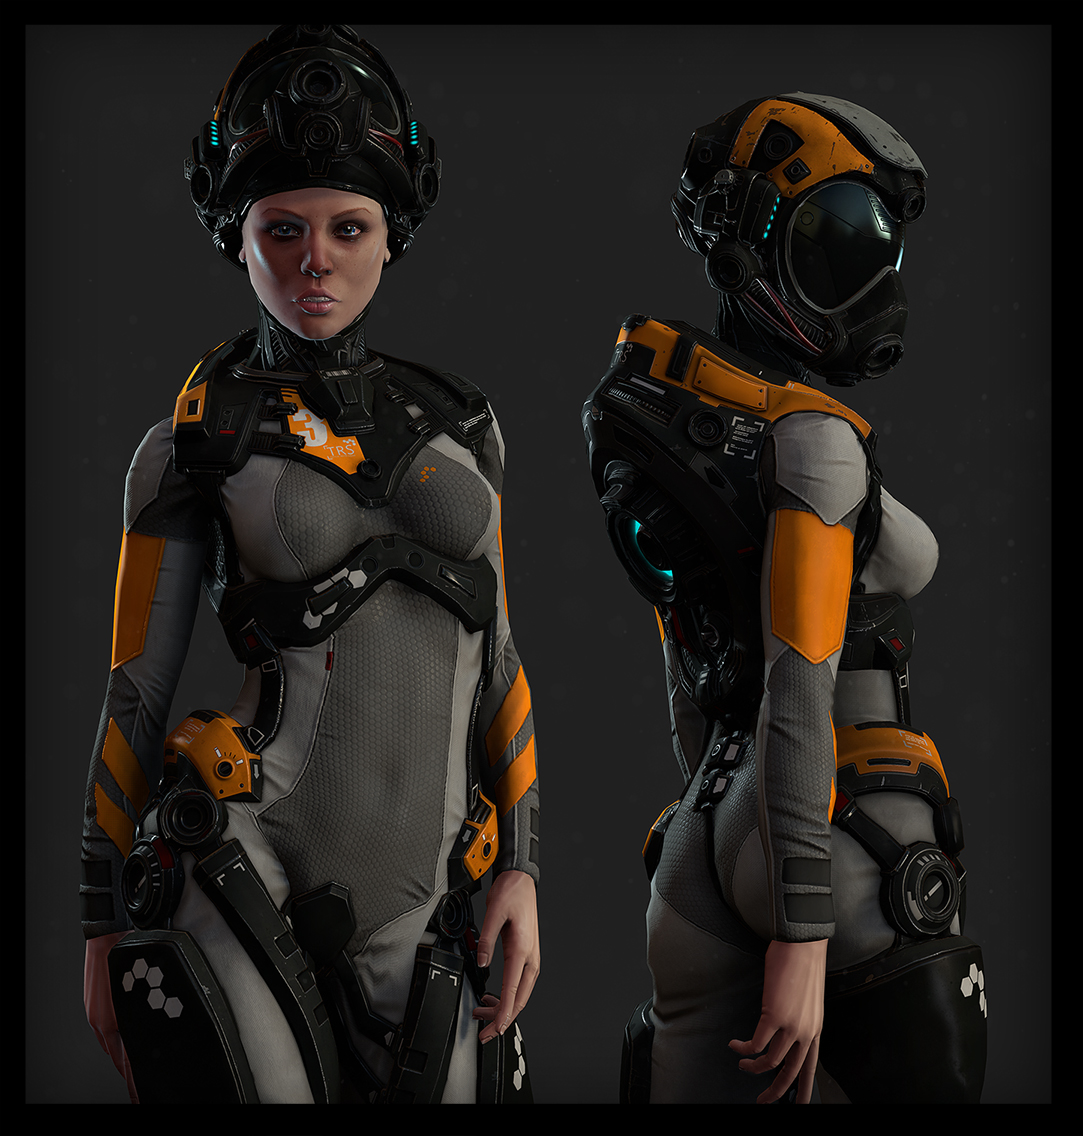 can we get female suits that look like this please close